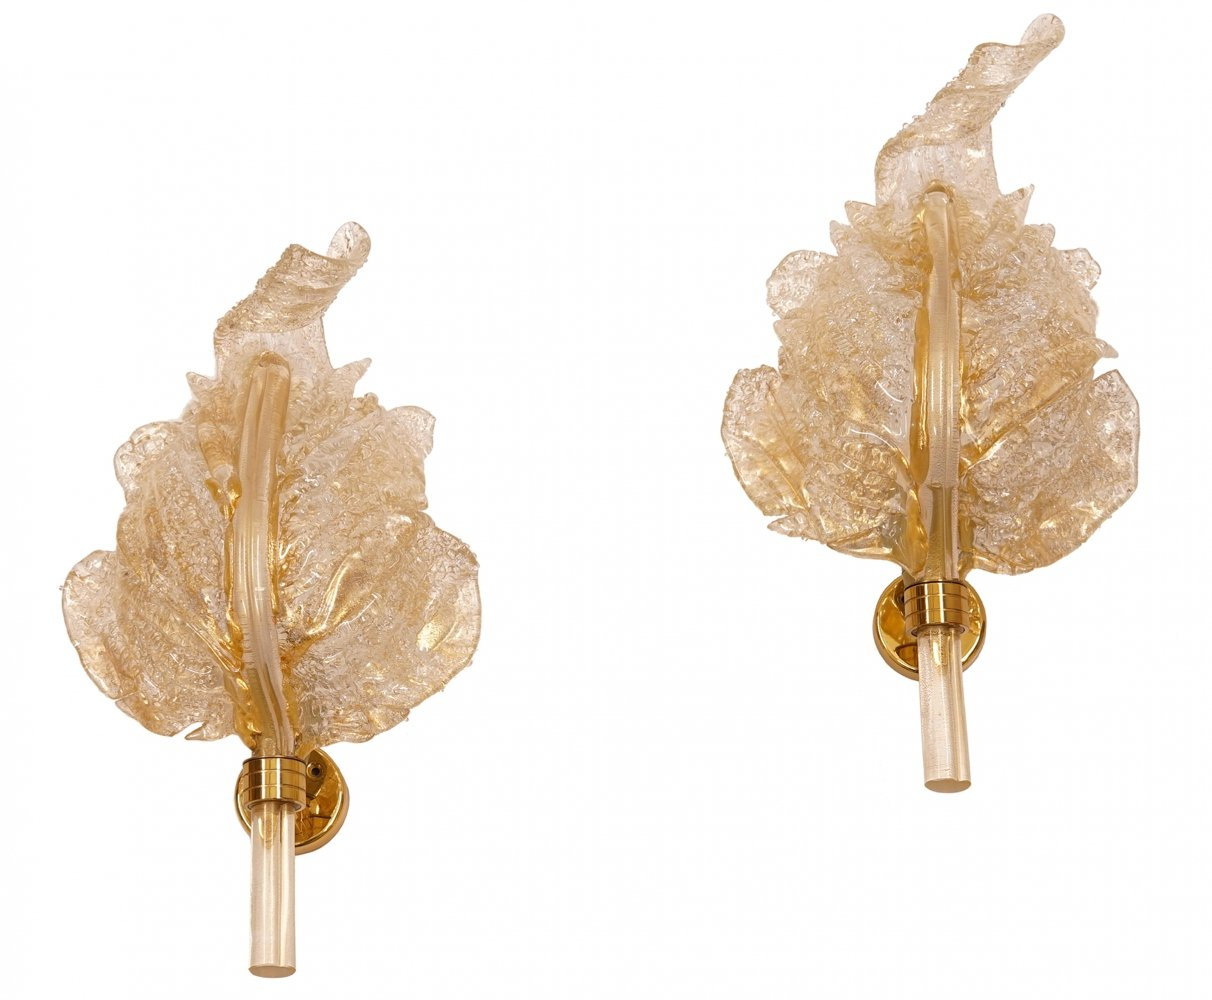 Set of 2 Murano Glass Sconces from Barovier e Toso